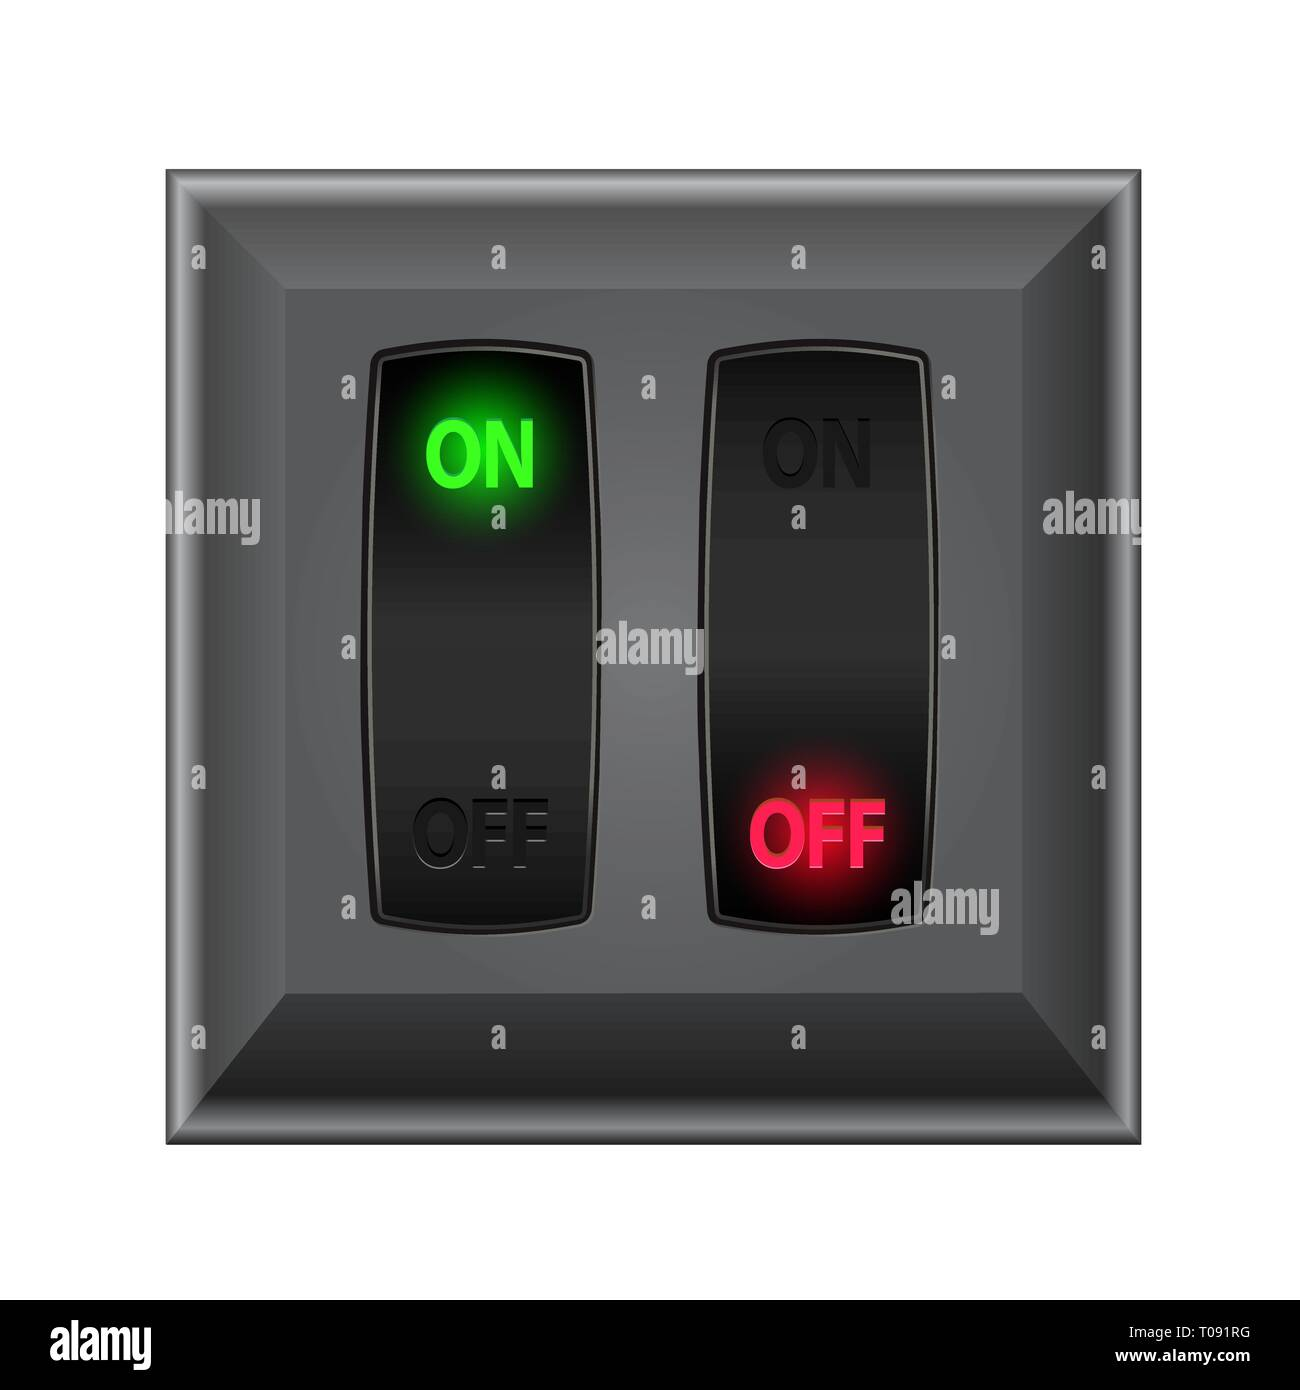 switches in on and off - Stock Image